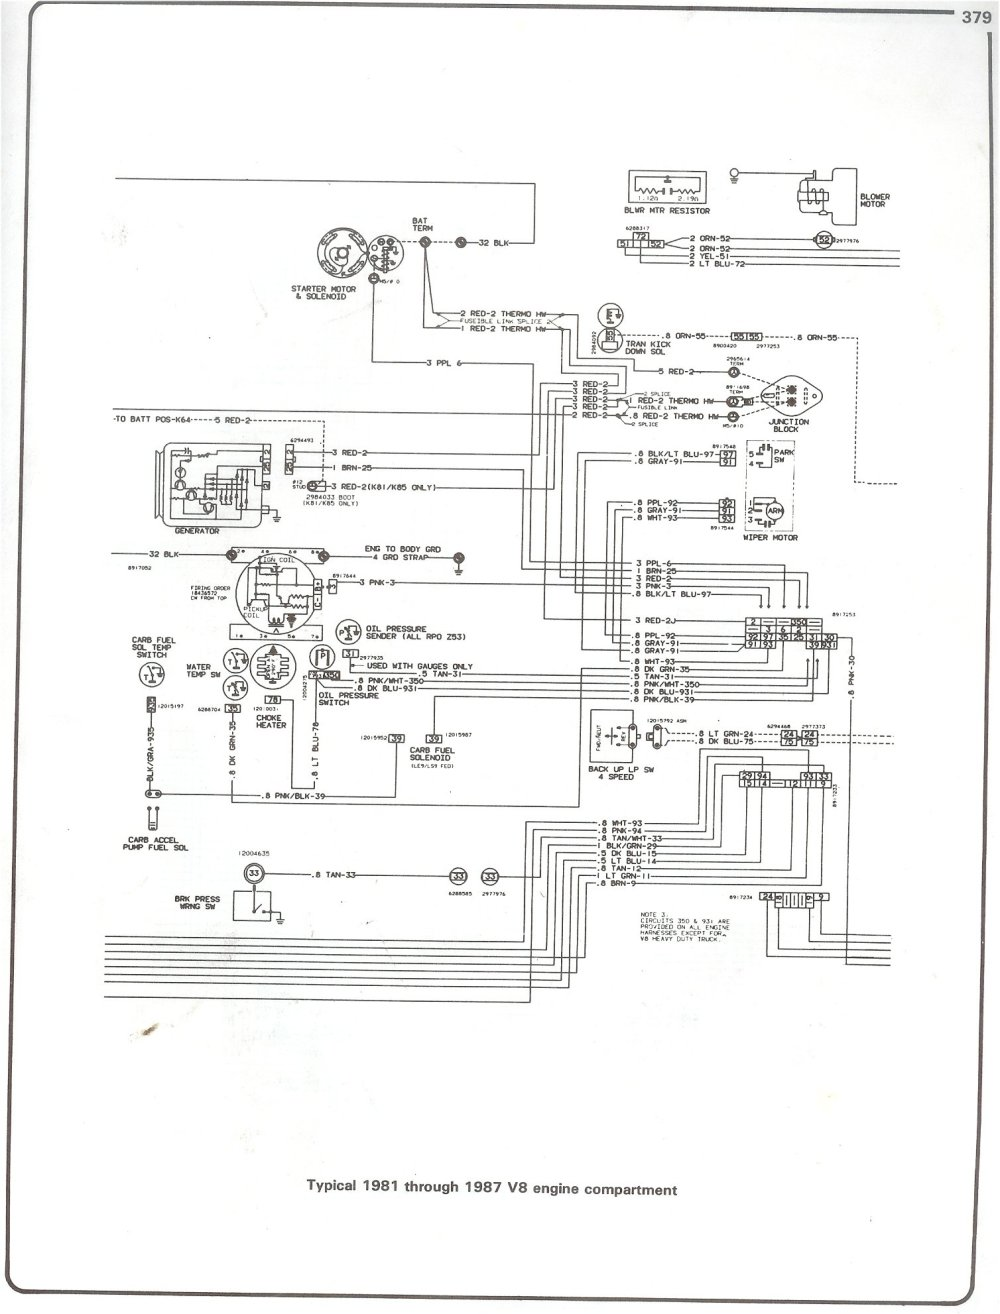 medium resolution of complete 73 87 wiring diagrams rh forum 73 87chevytrucks com 1986 gmc sierra radio wiring diagram 1986 gmc sierra radio wiring diagram